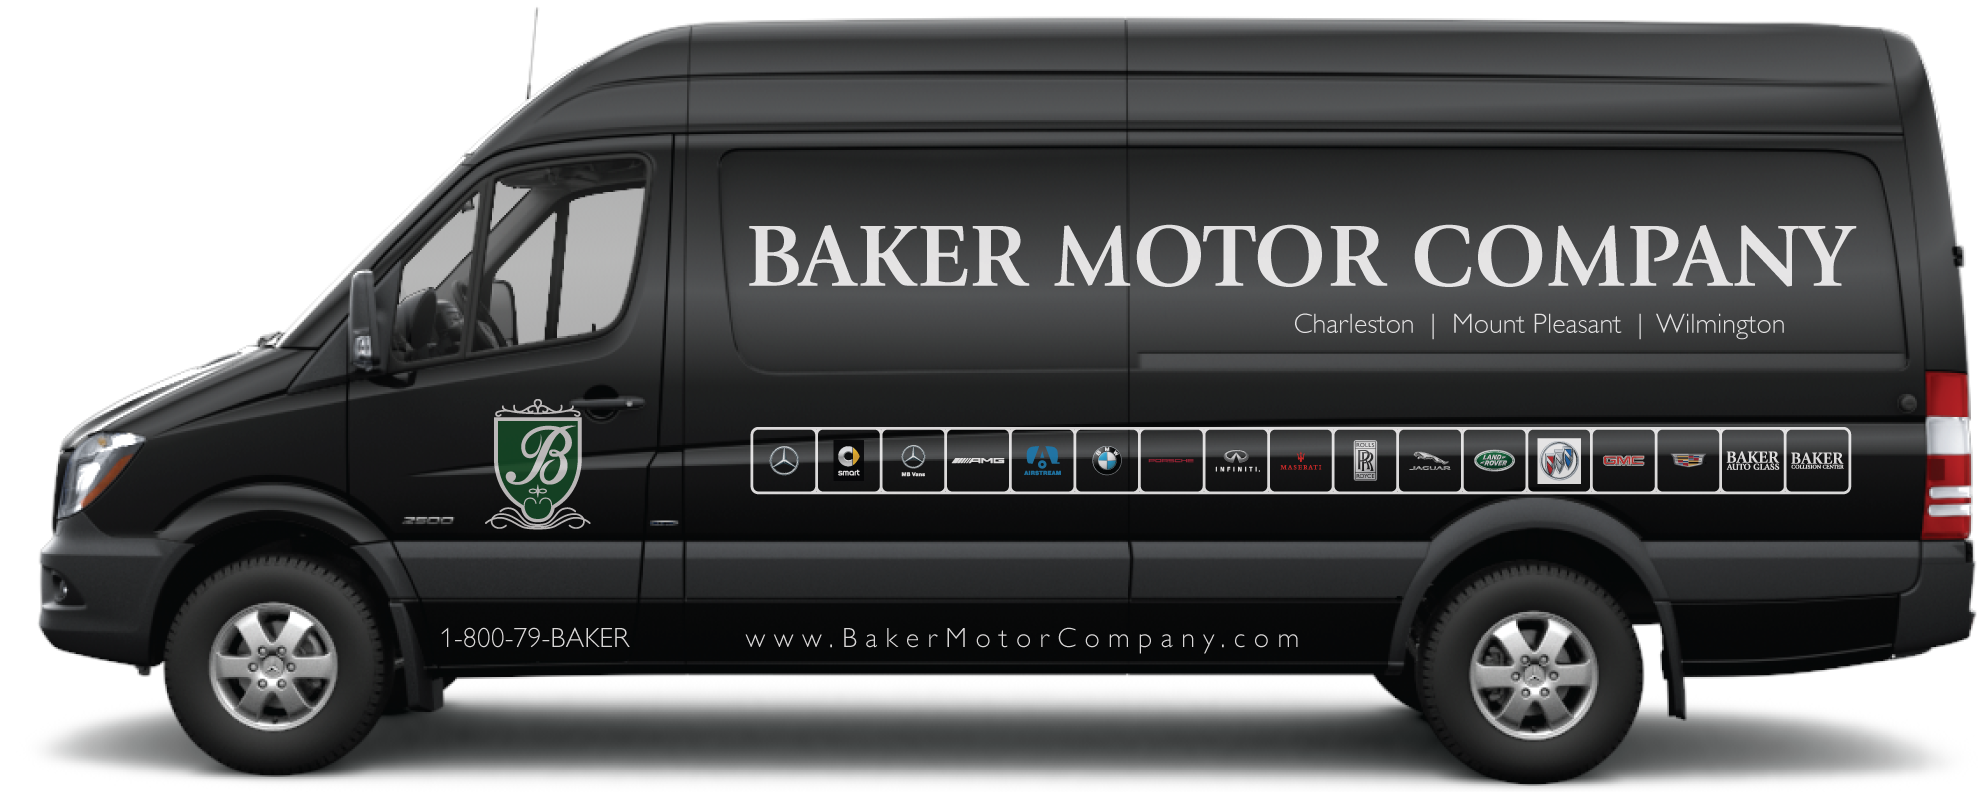 Charleston south carolina airstream airstream autobahn for Baker motor company land rover